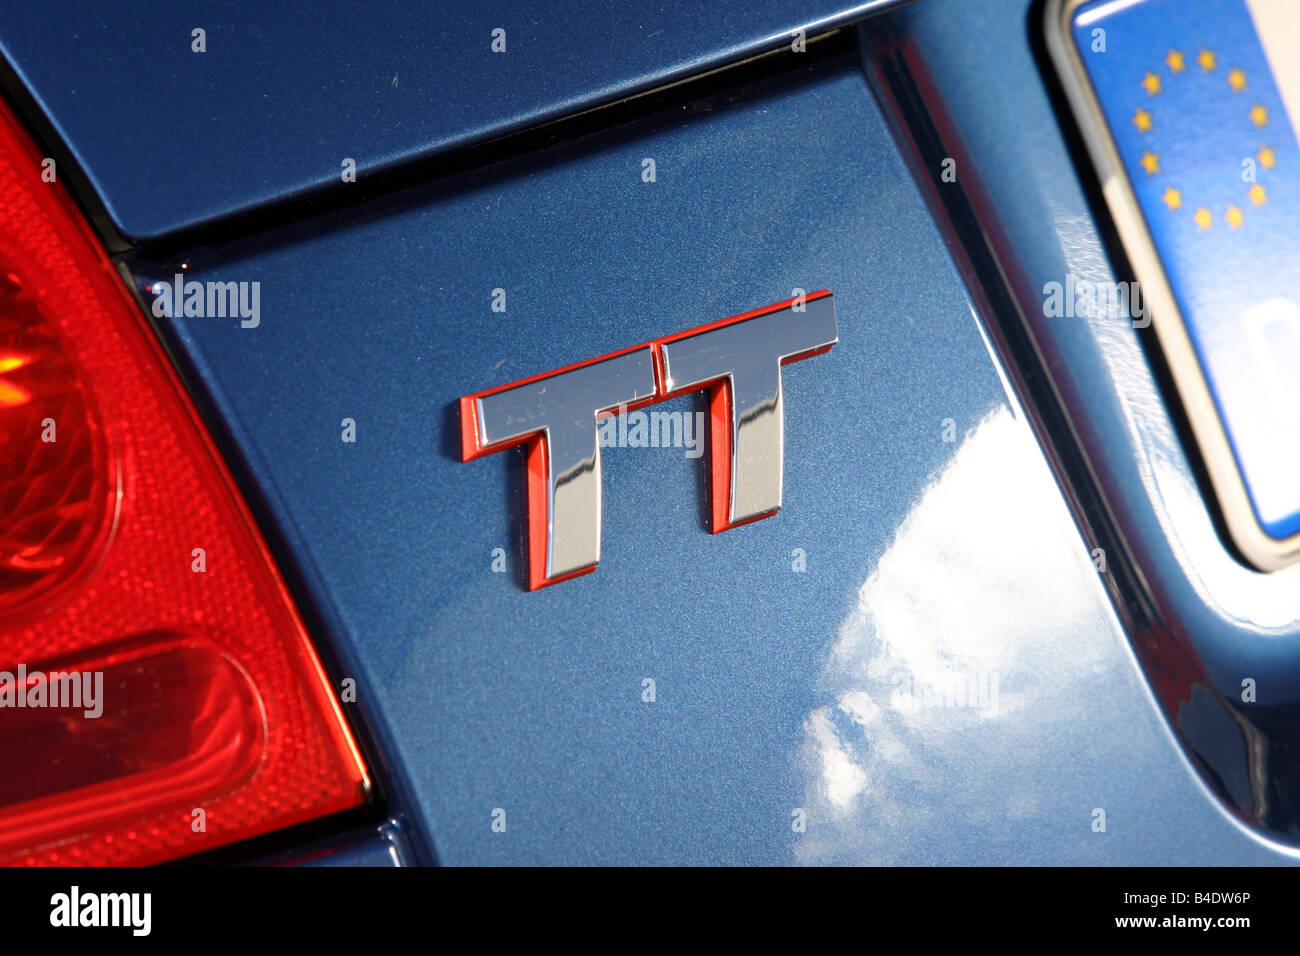 Car, Audi TT 3.2, coupe, roadster, model year 2003-, blue, Detailed view, Model designation Stock Photo